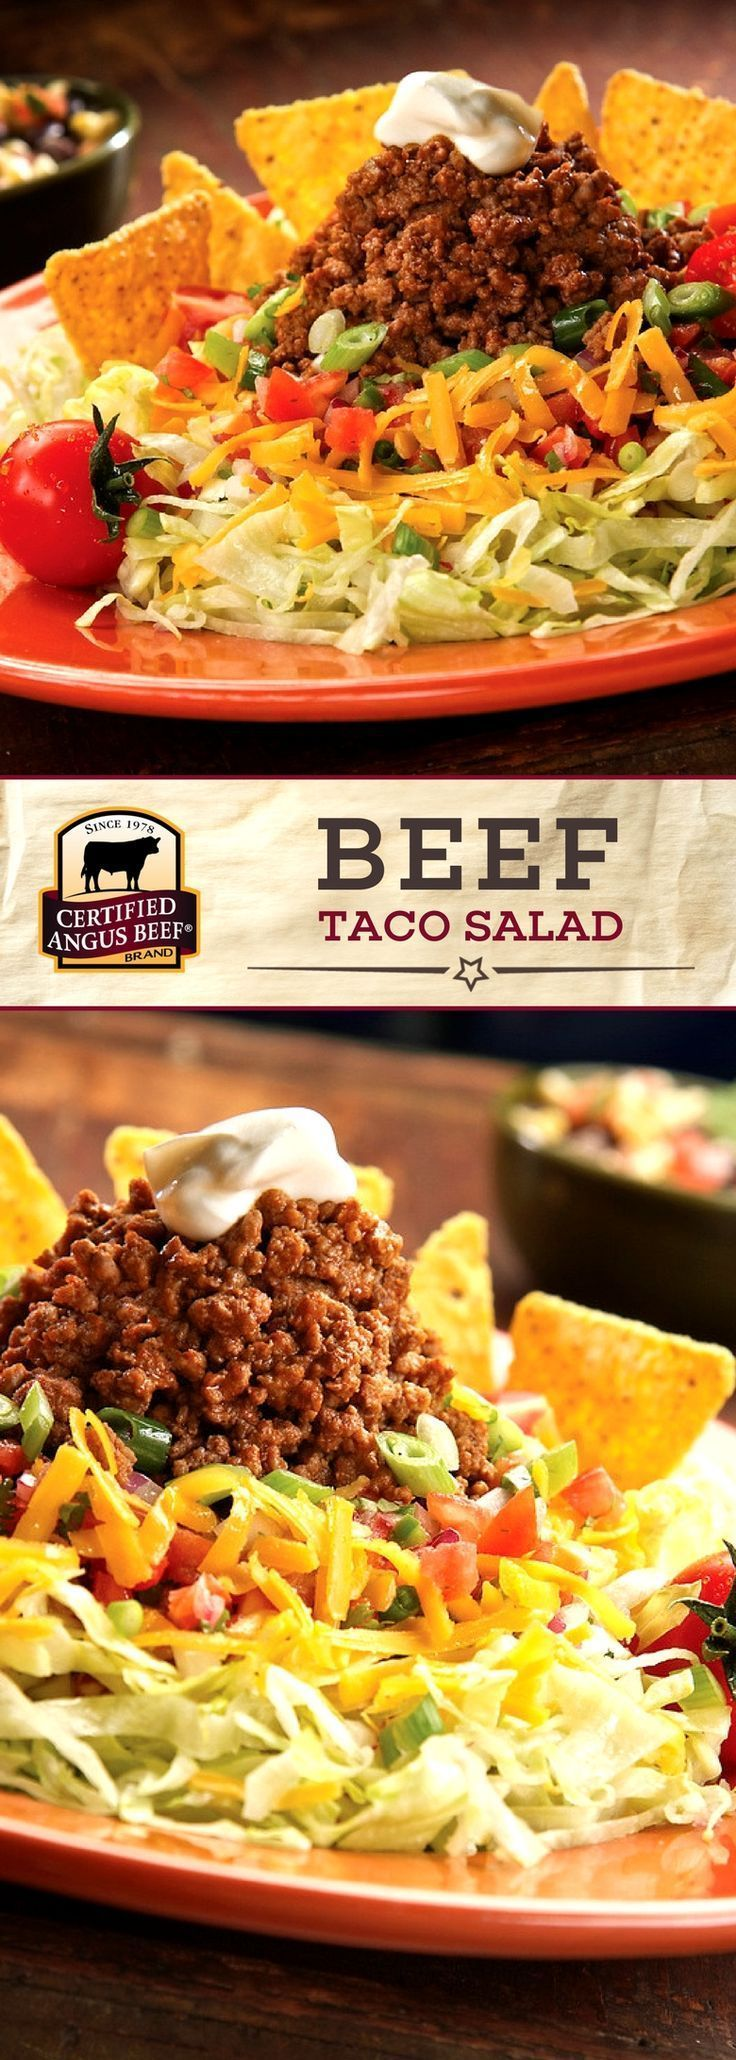 Certified Angus Beef®️️️️️️️ brand Beef Taco Salad uses the best ground chuck, combined with taco seasoning and fresh toppings, for a deliciously EASY recipe! Perfect for a family dinner!   #bestangusbeef #certifiedangusbeef #beefrecipe #easyrecipes #tacotuesday